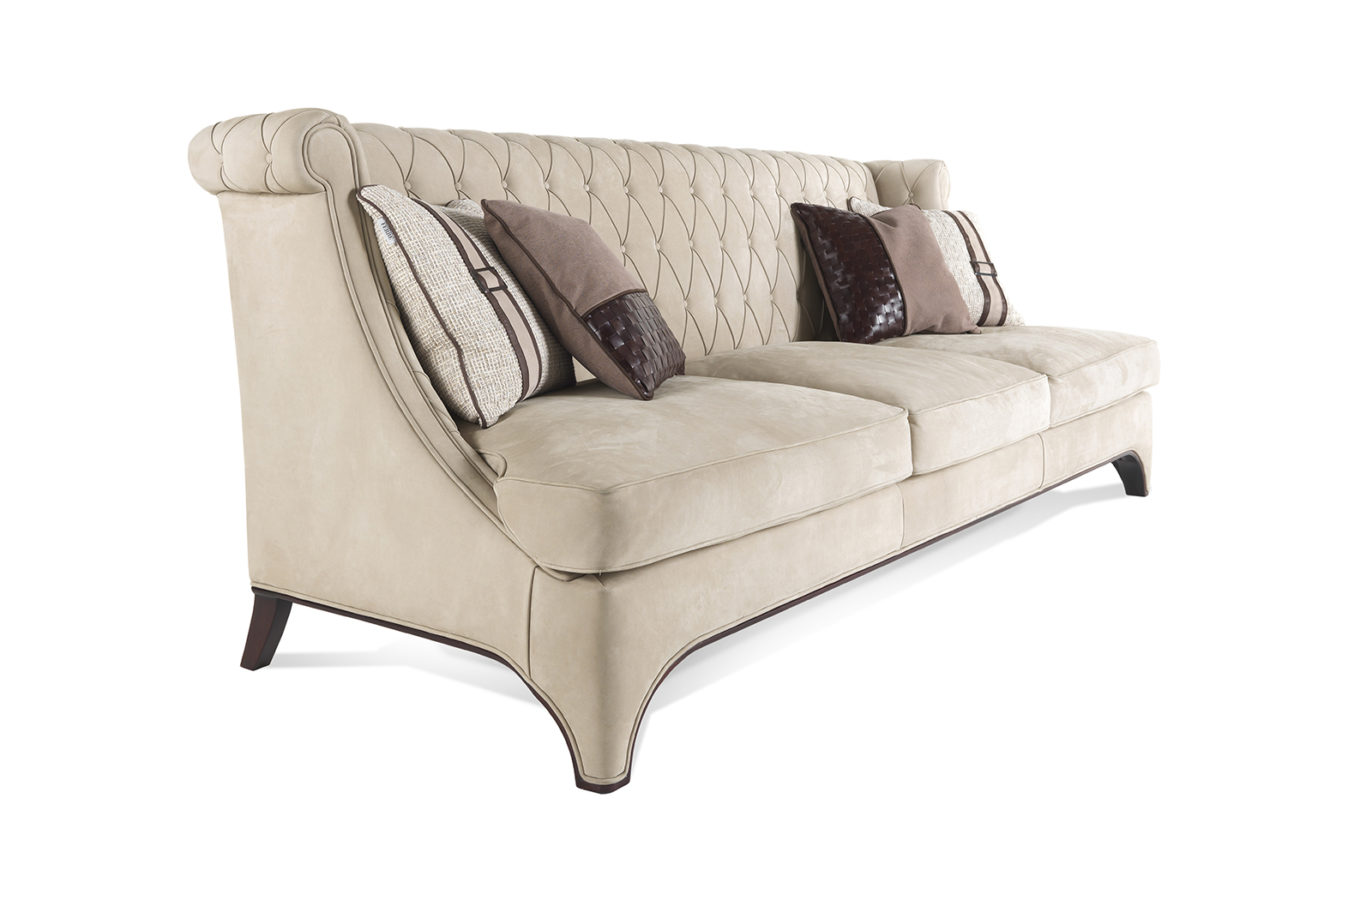 Gianfranco Ferre Home Bradmore Sofa